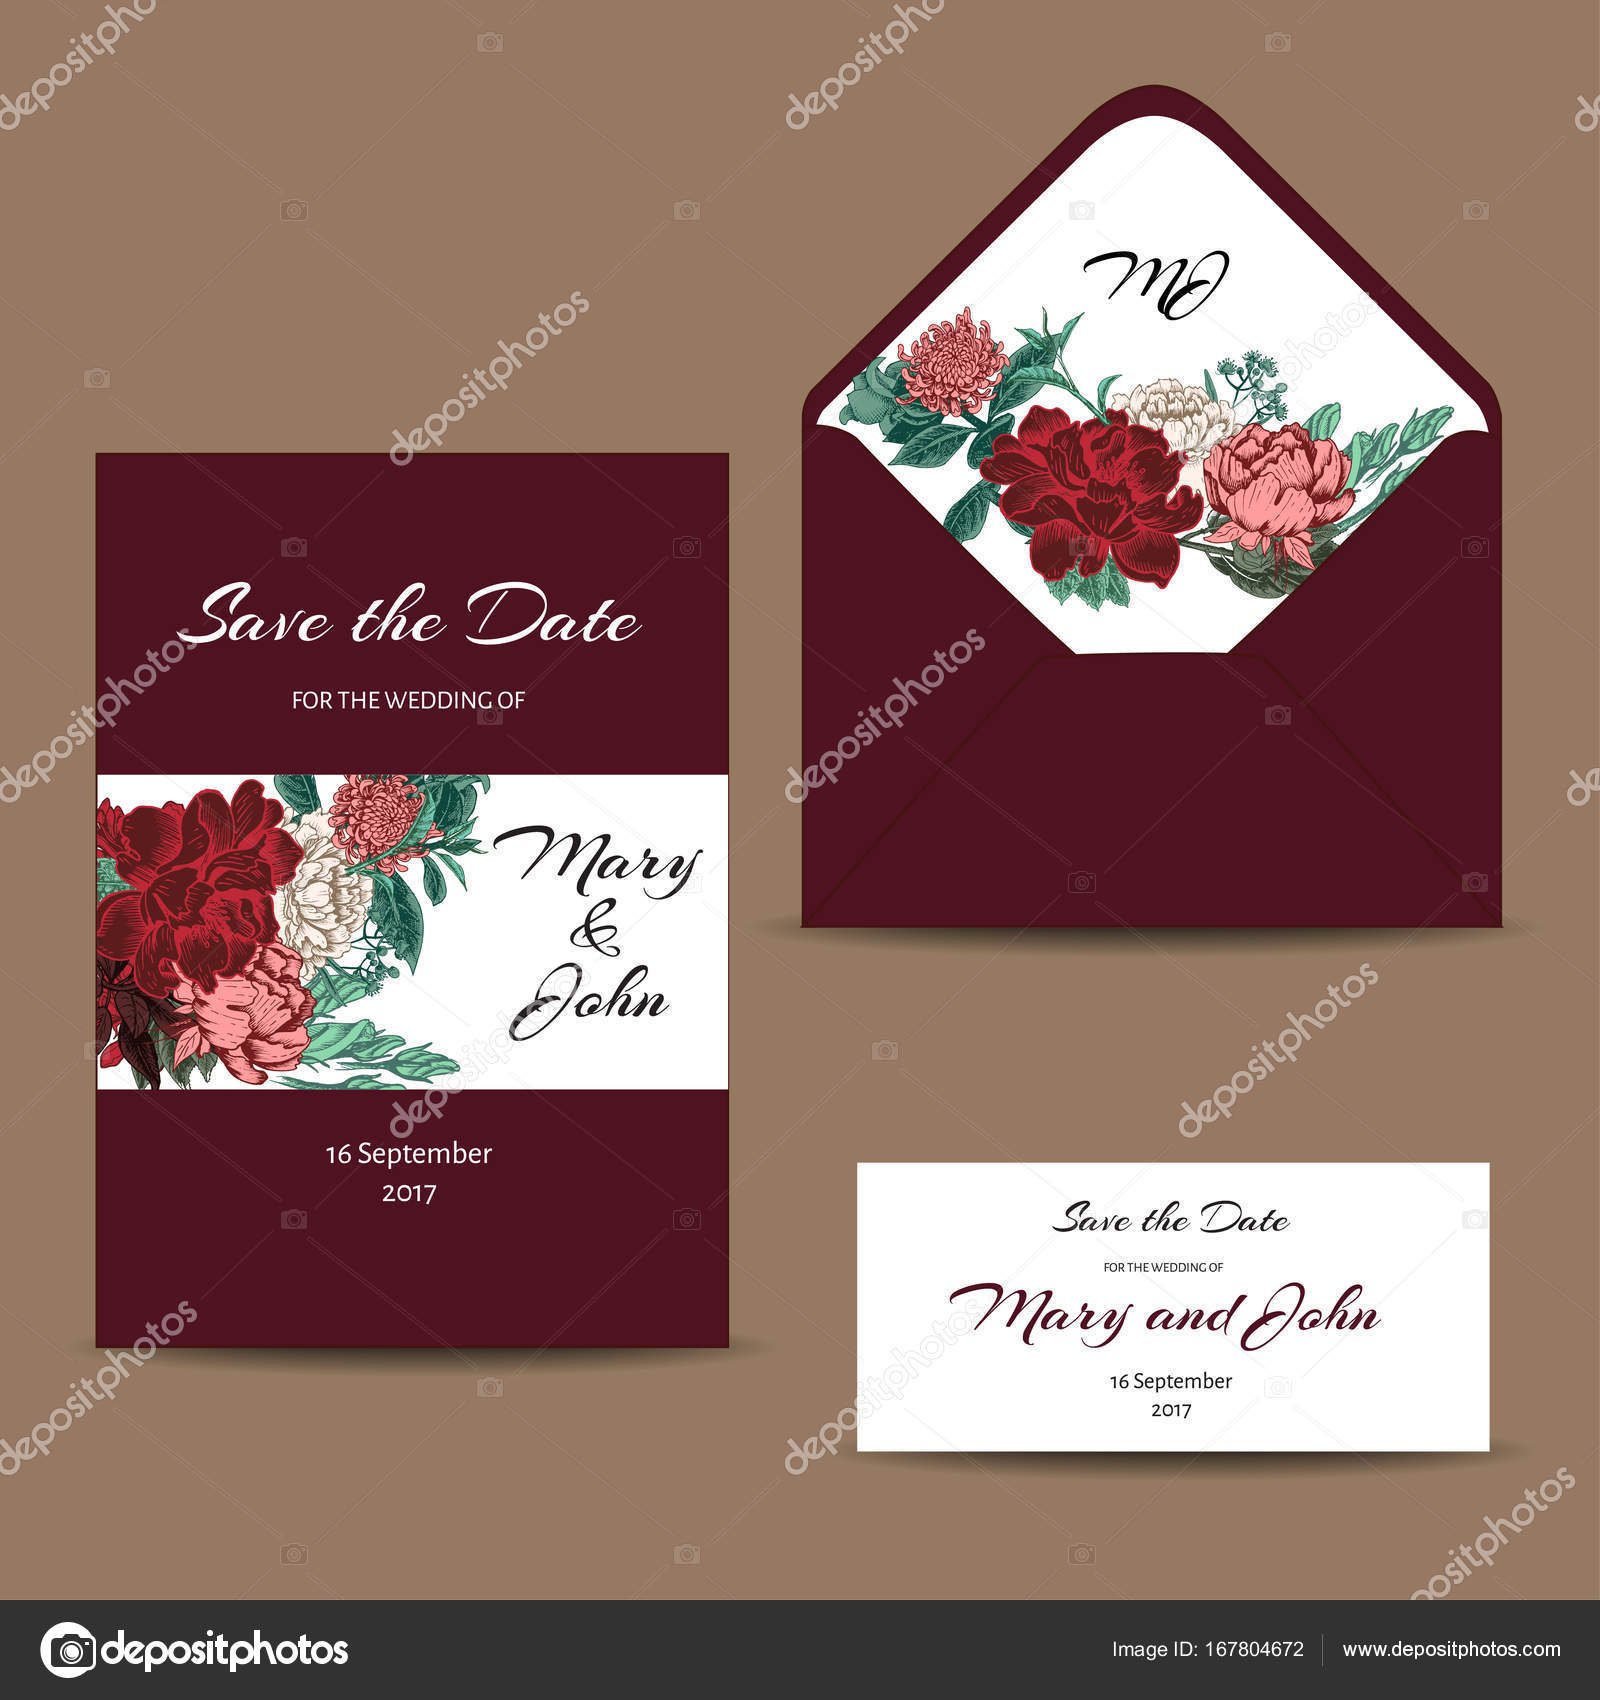 A Set Of Invitation Cards For The Wedding Postcards With Floral